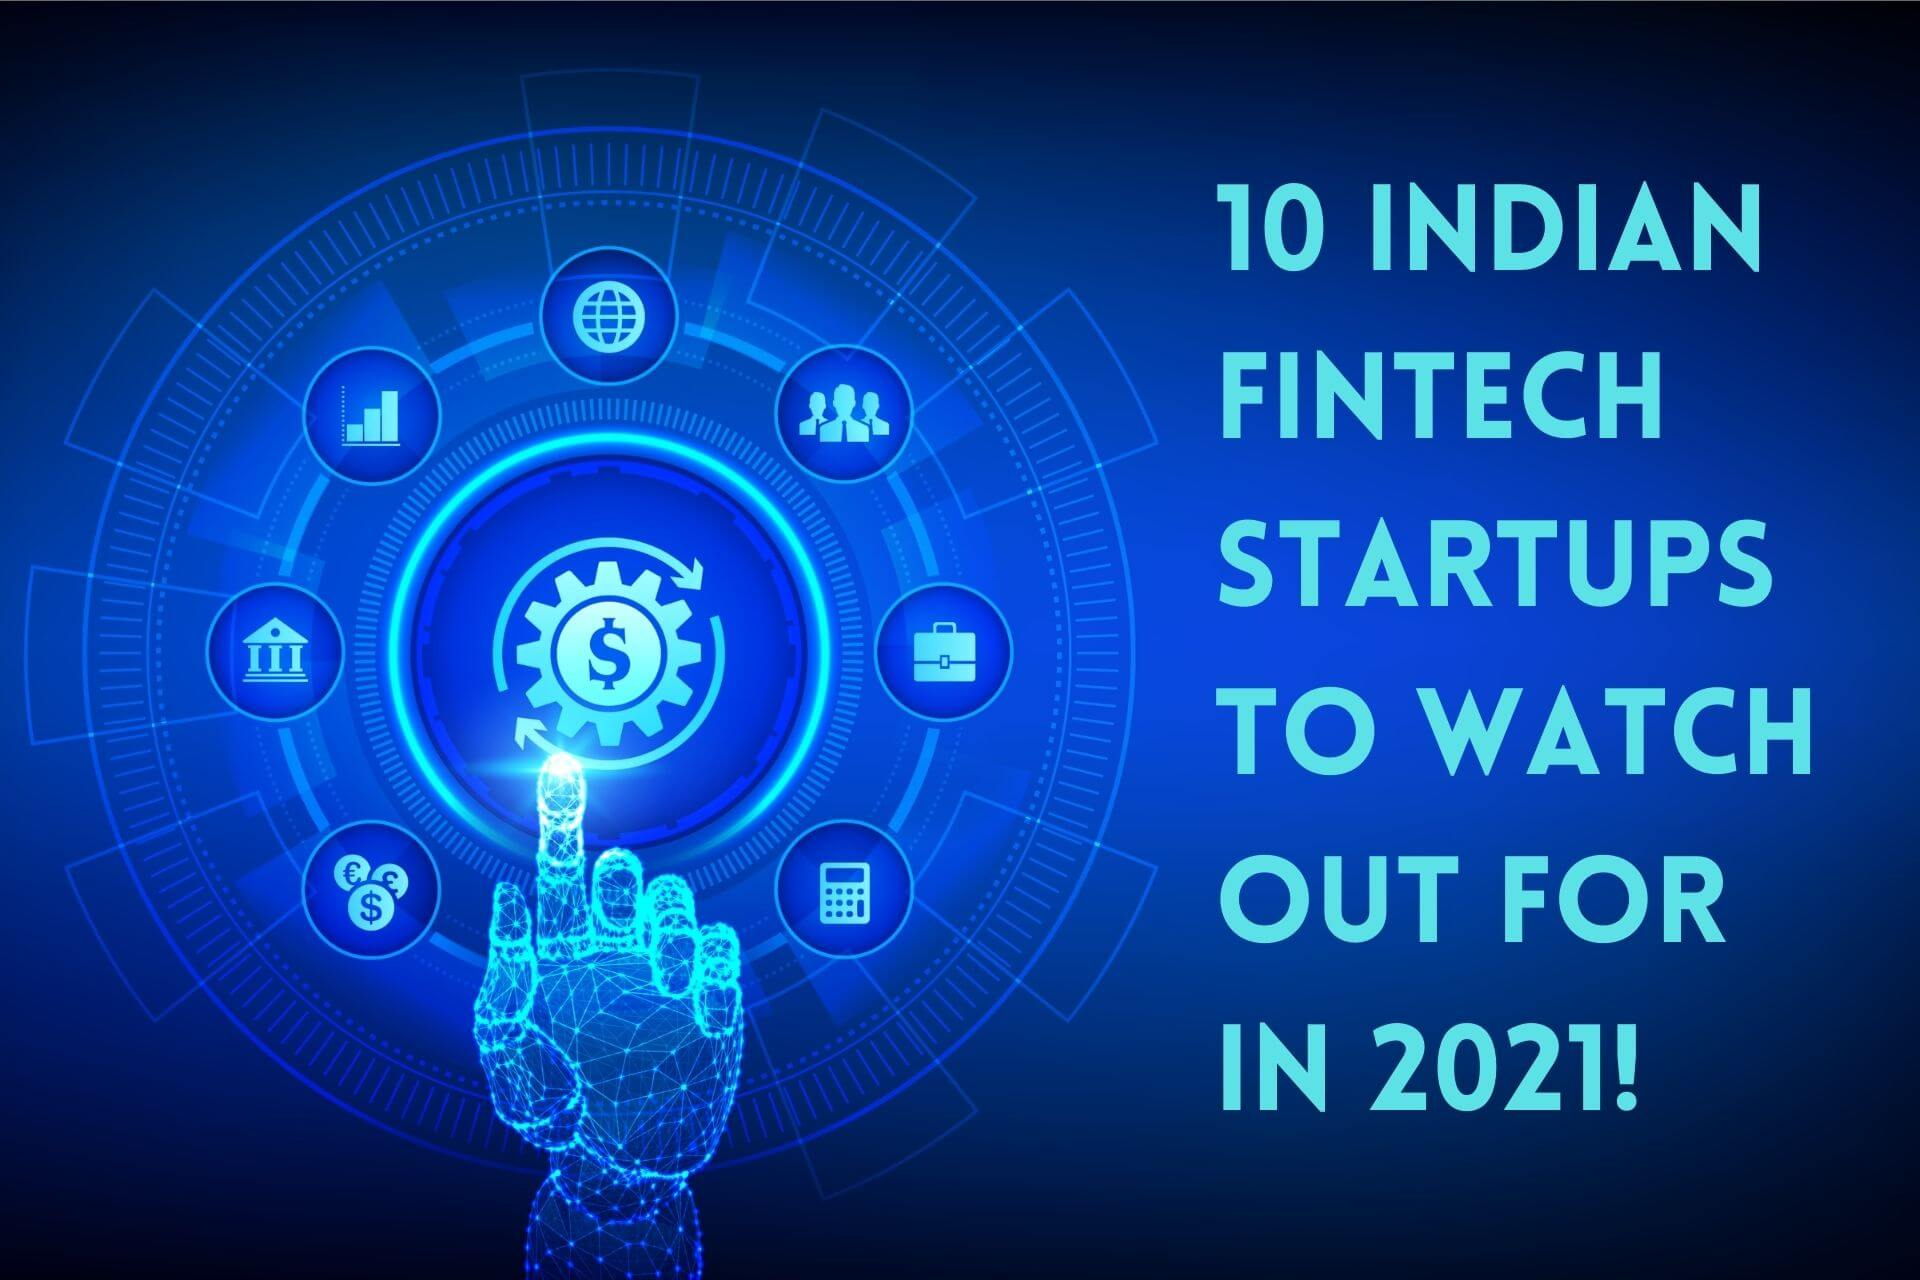 10 Indian Fintech Startups to Watch Out For in 2021 cover